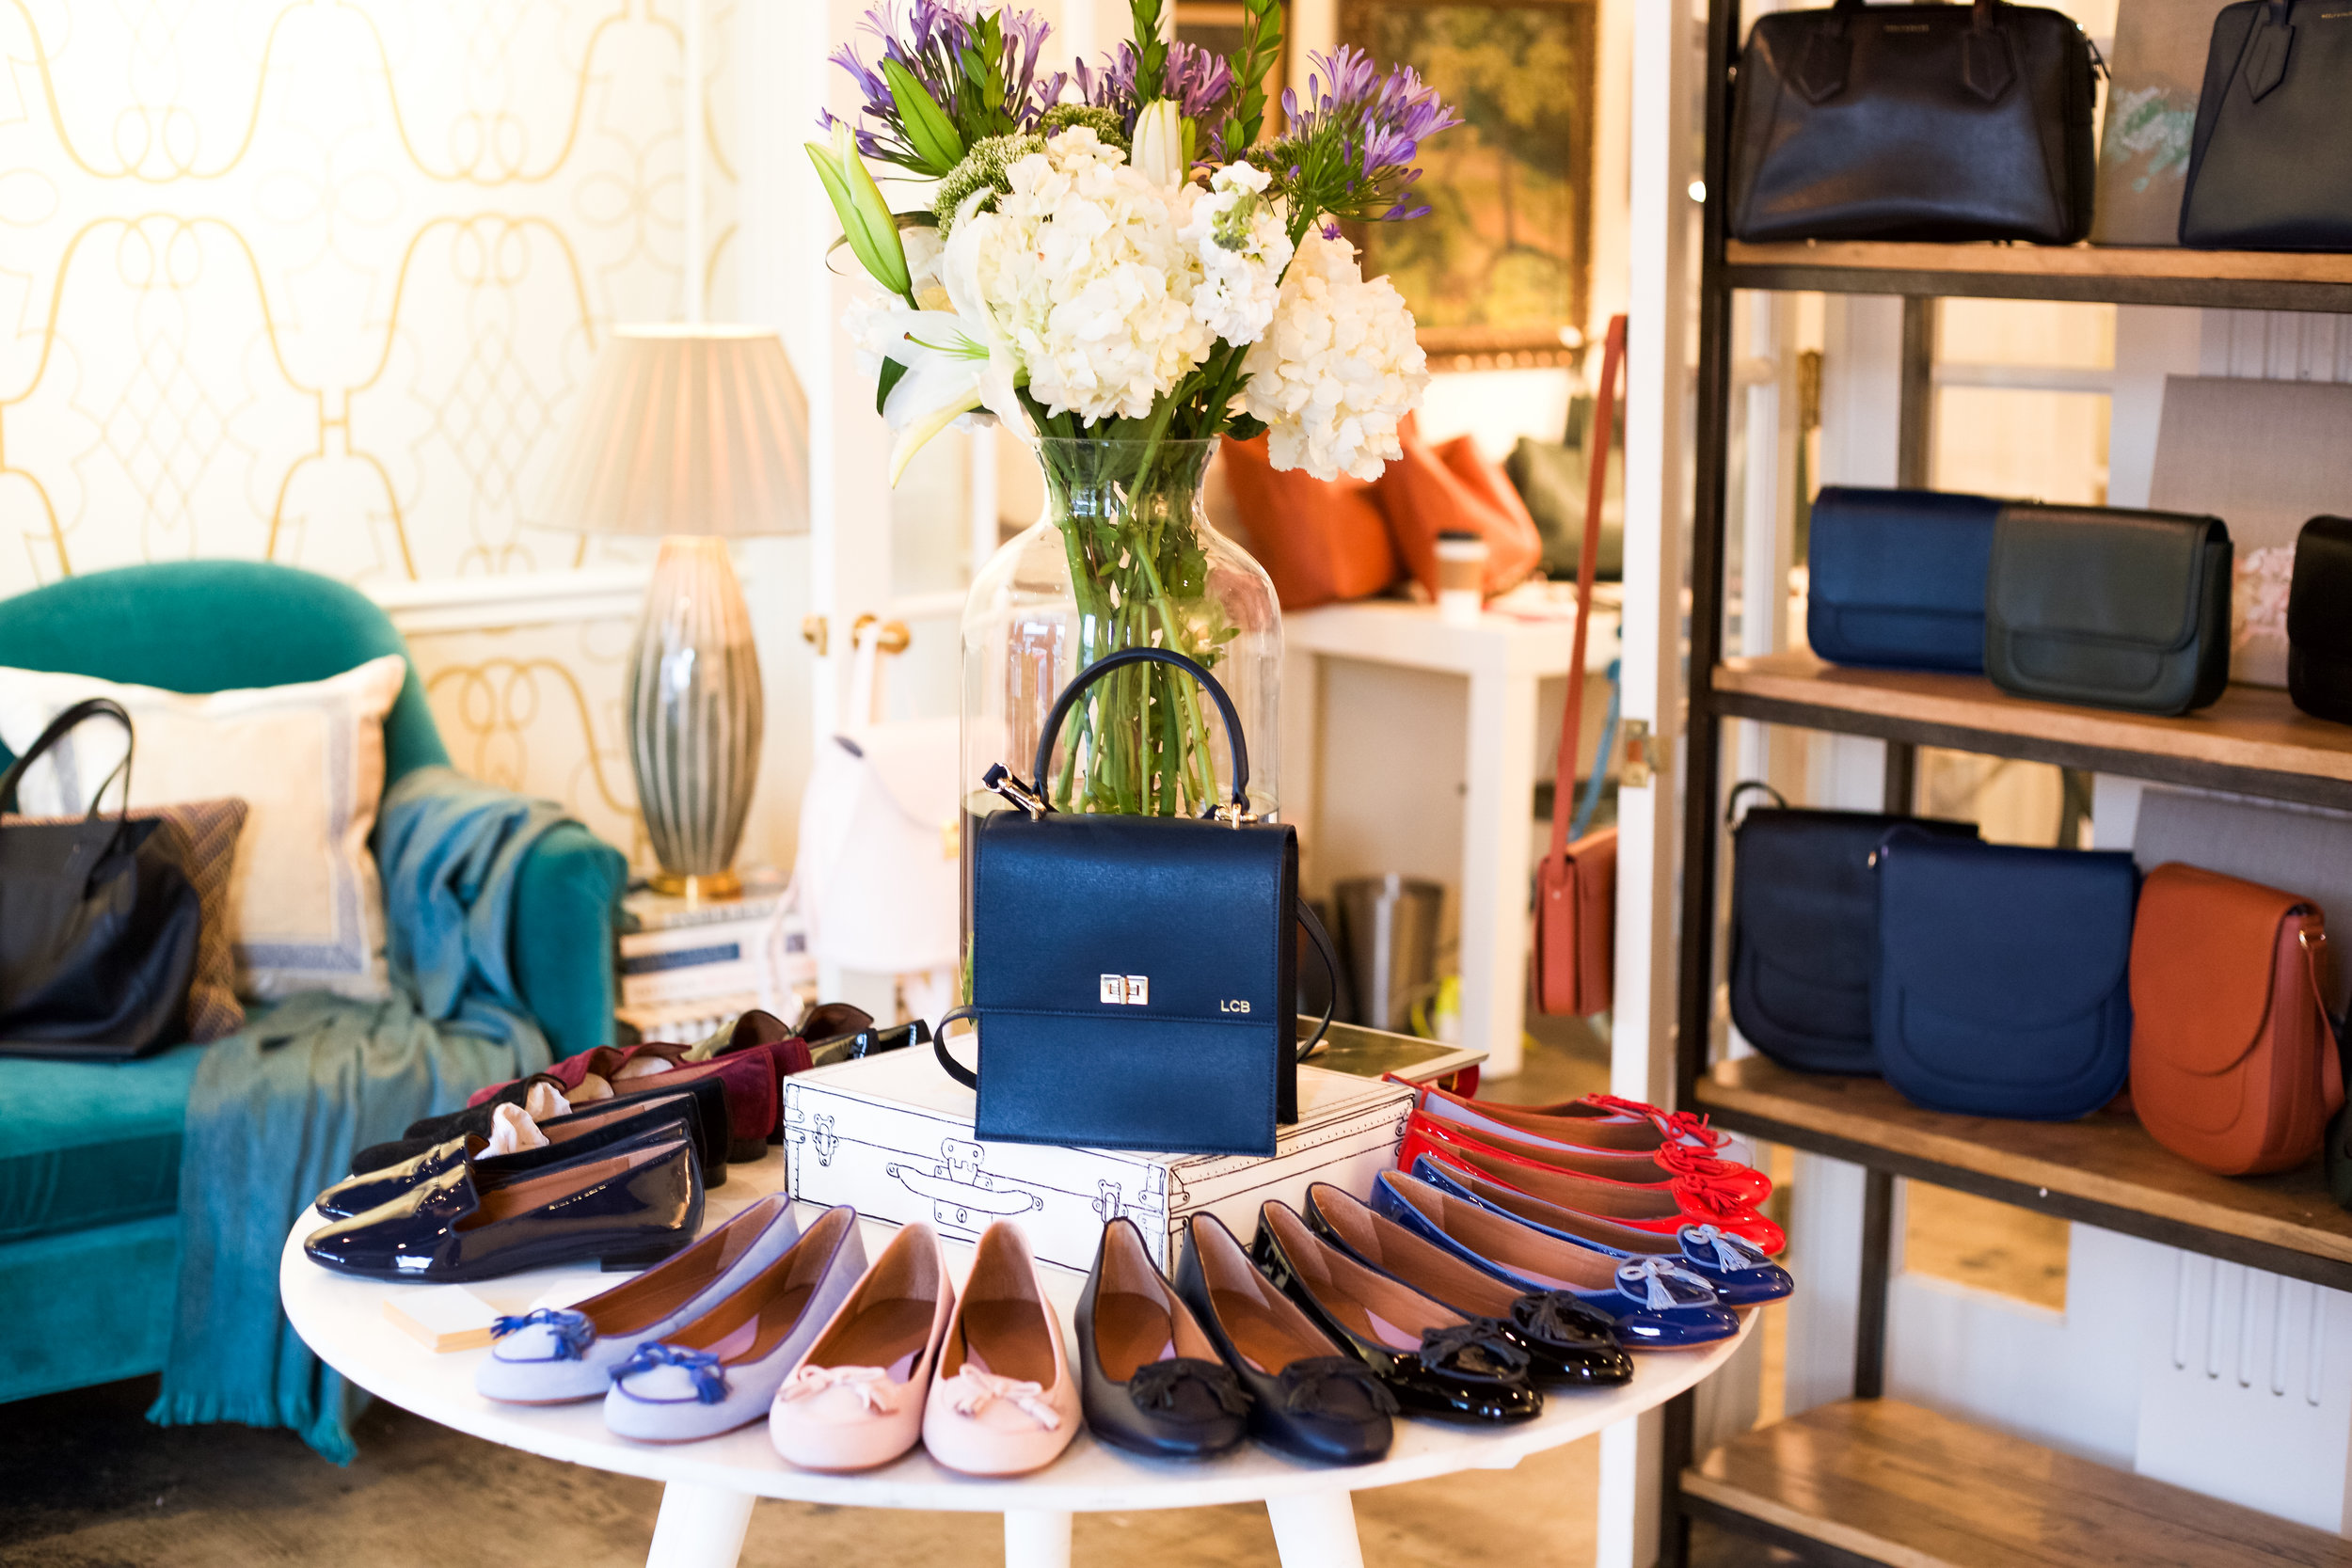 neely and chloe lcb style trunk show event (8 of 38).jpg